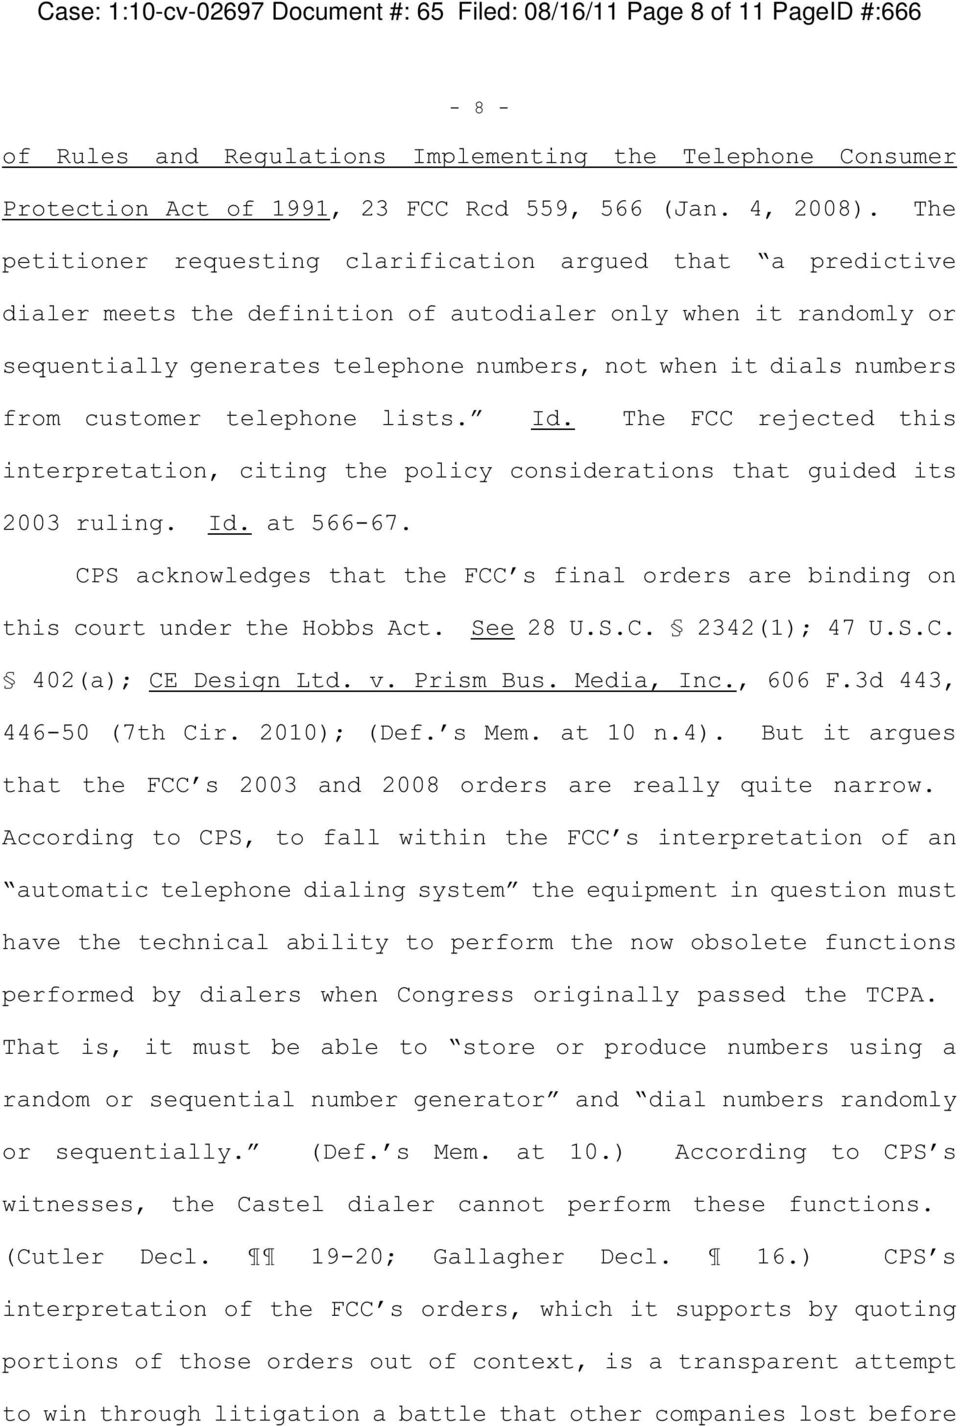 The petitioner requesting clarification argued that a predictive dialer meets the definition of autodialer only when it randomly or sequentially generates telephone numbers, not when it dials numbers